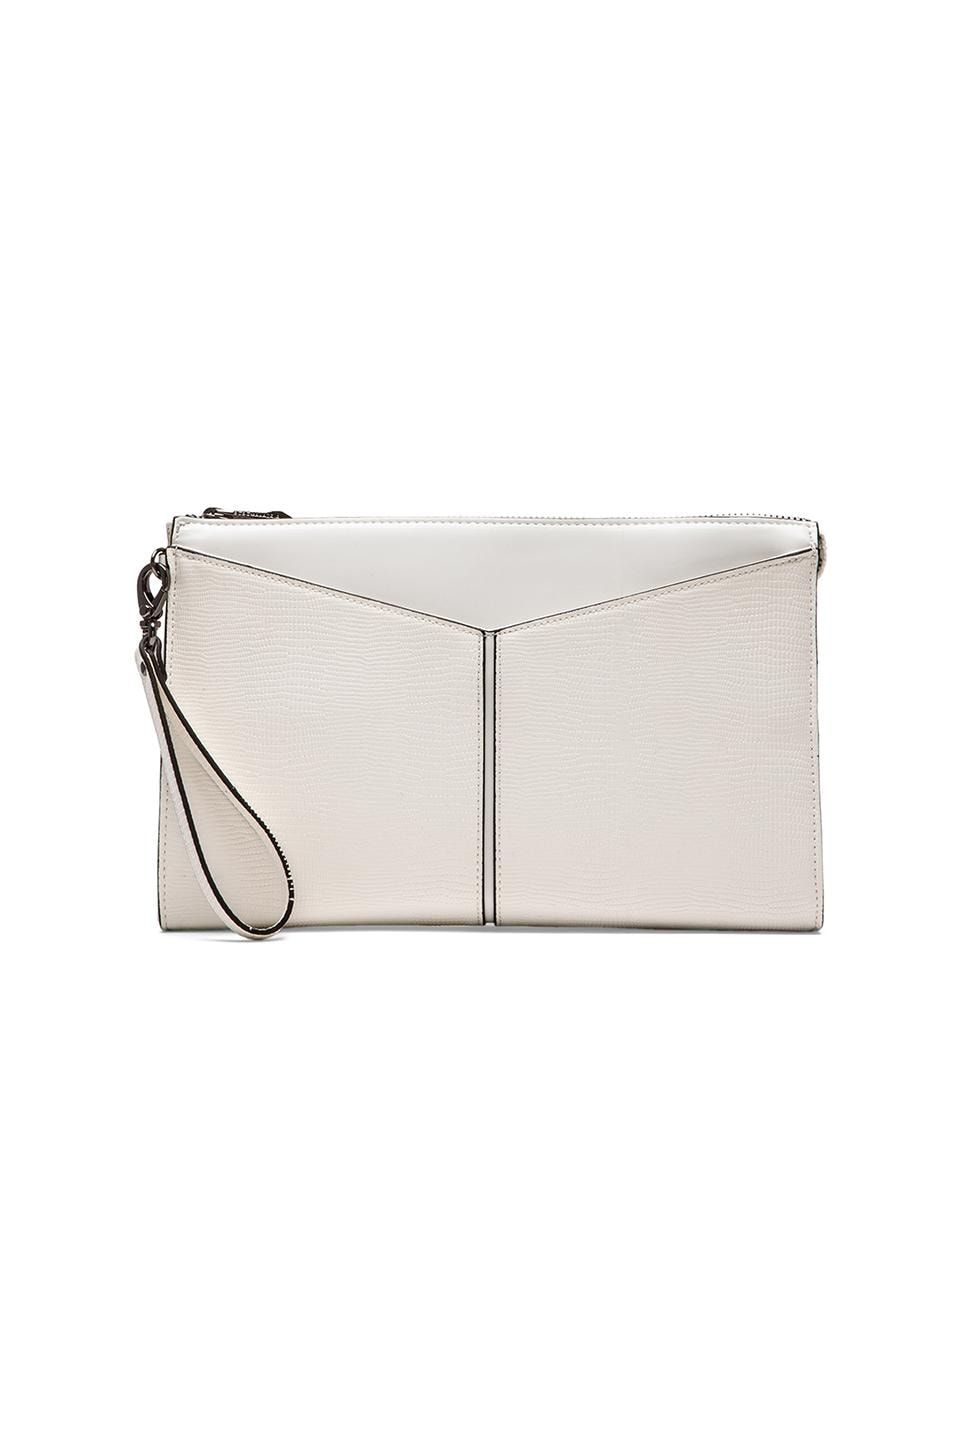 BCBGMAXAZRIA Angled Slip Pocket Clutch in White